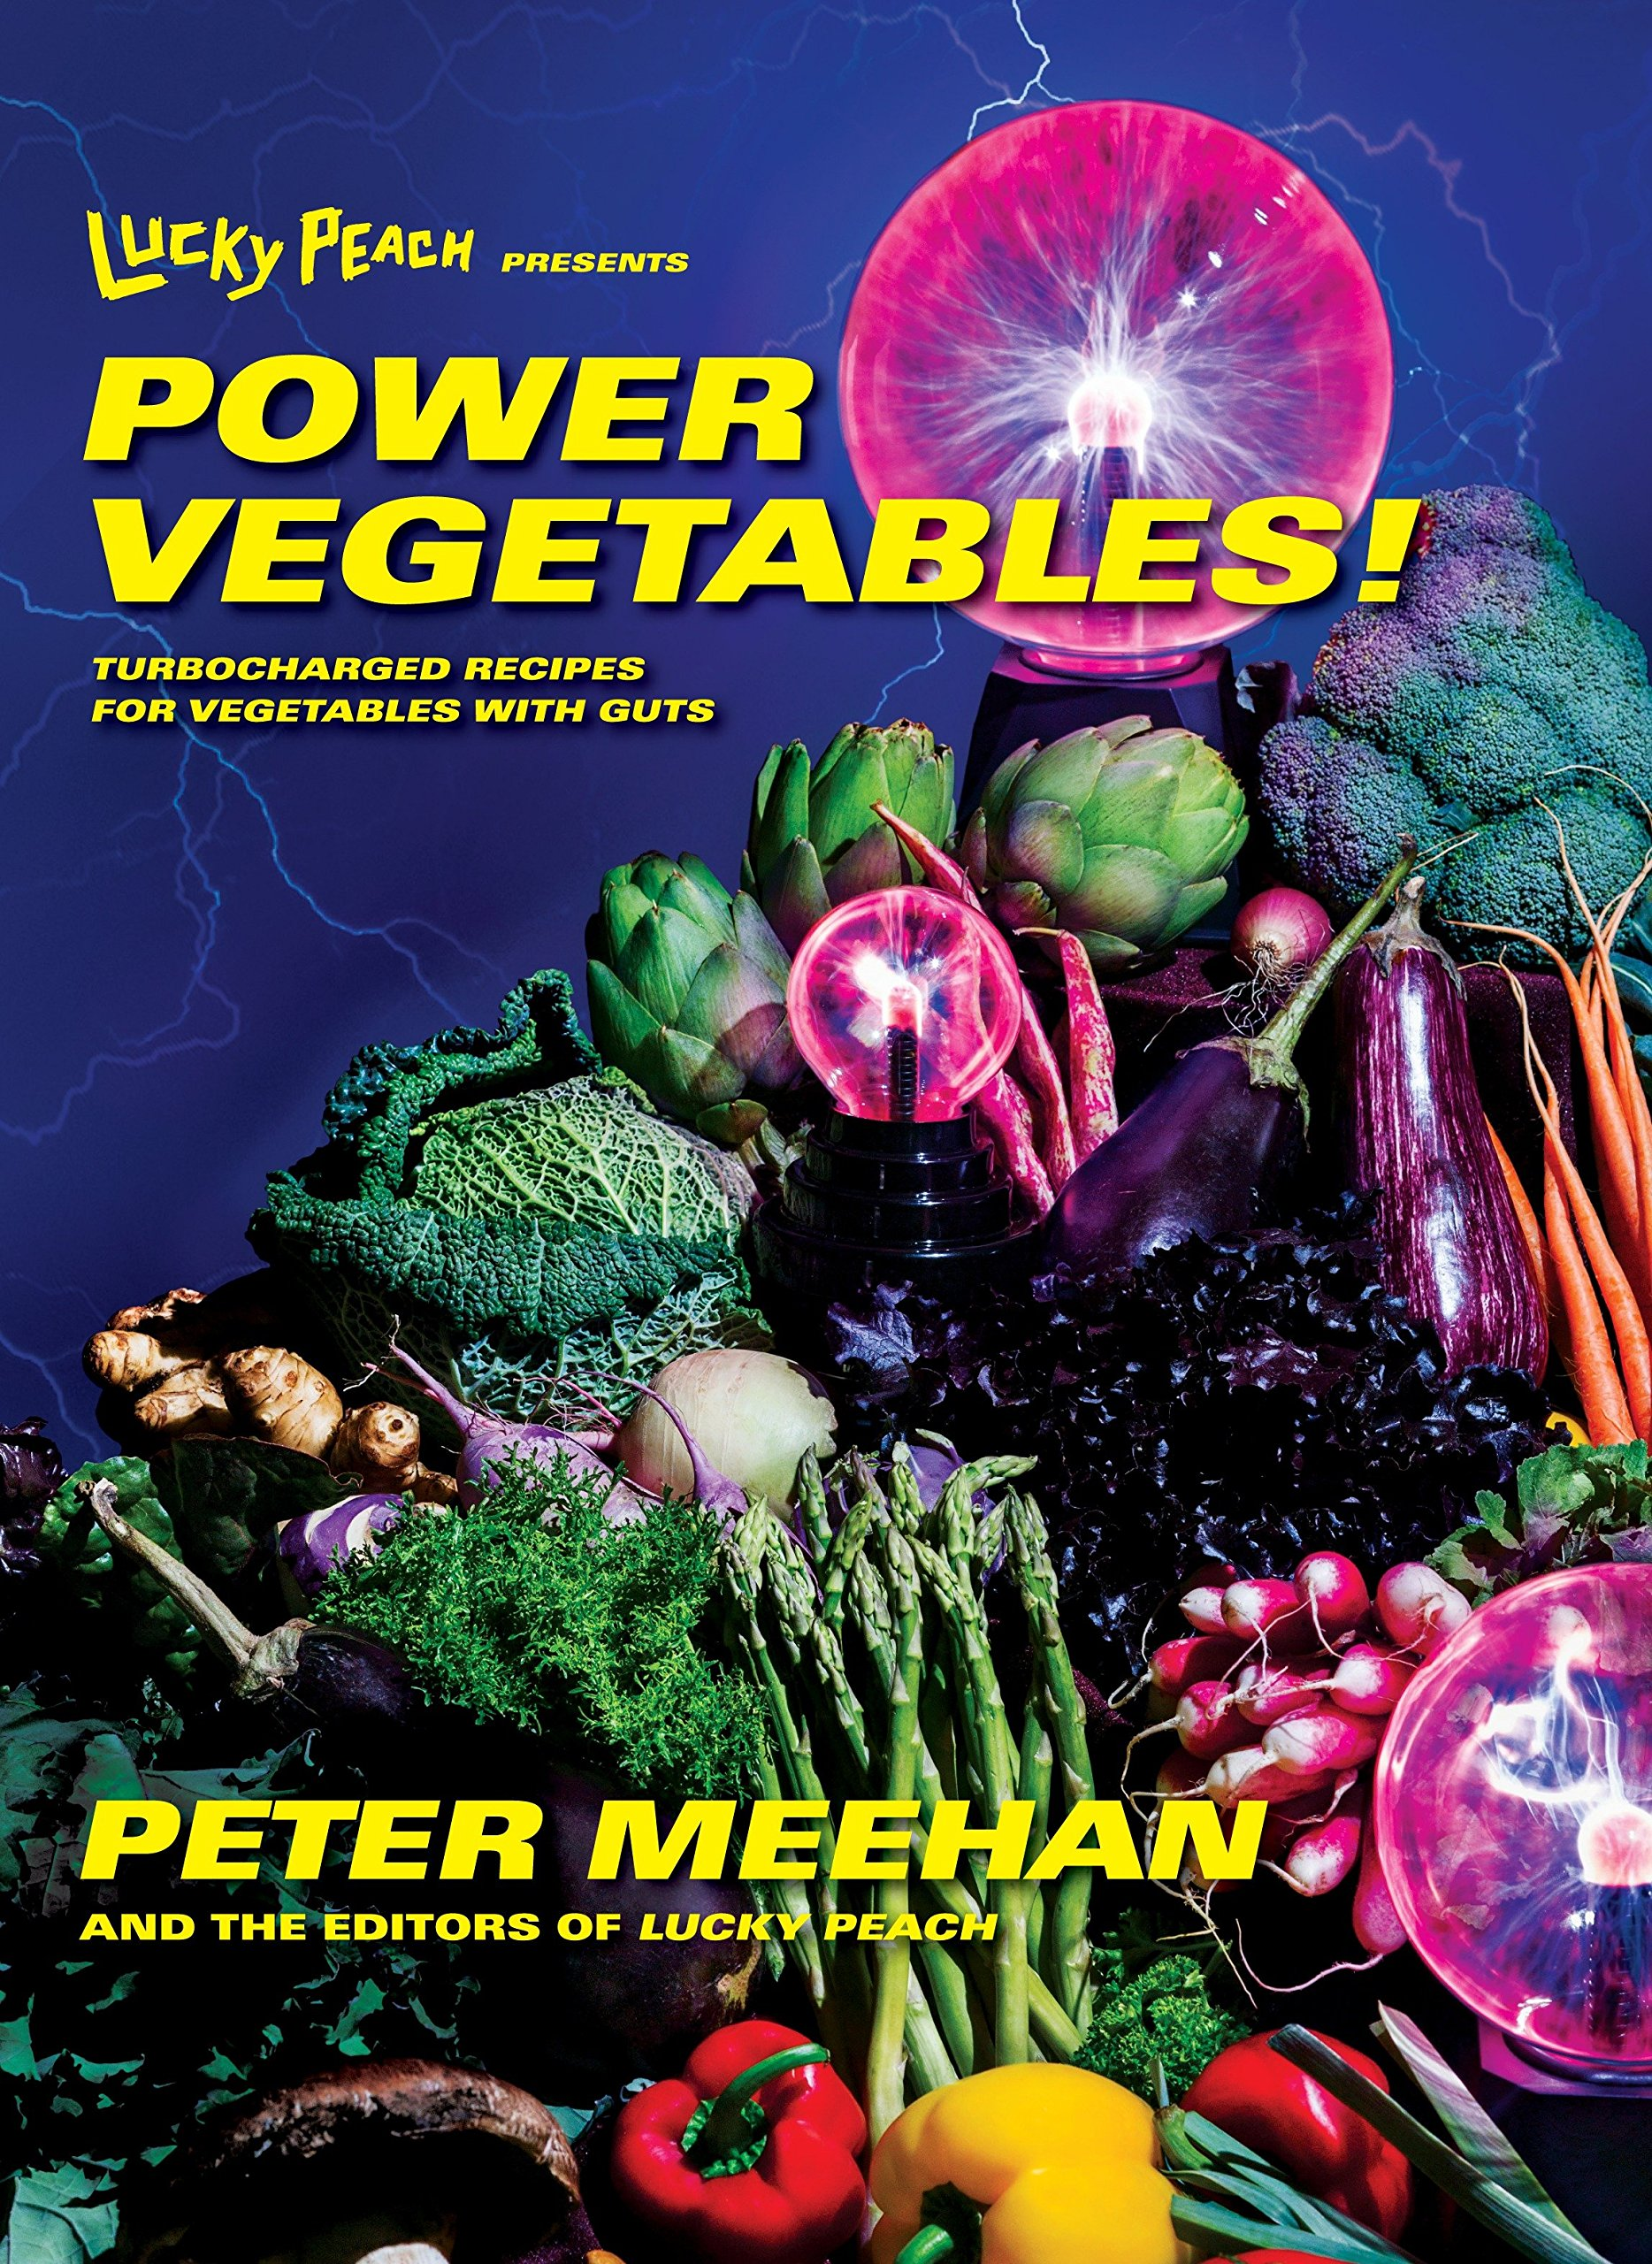 Lucky Peach Presents Power Vegetables!: Amazon.es: Peter Meehan: Libros en idiomas extranjeros